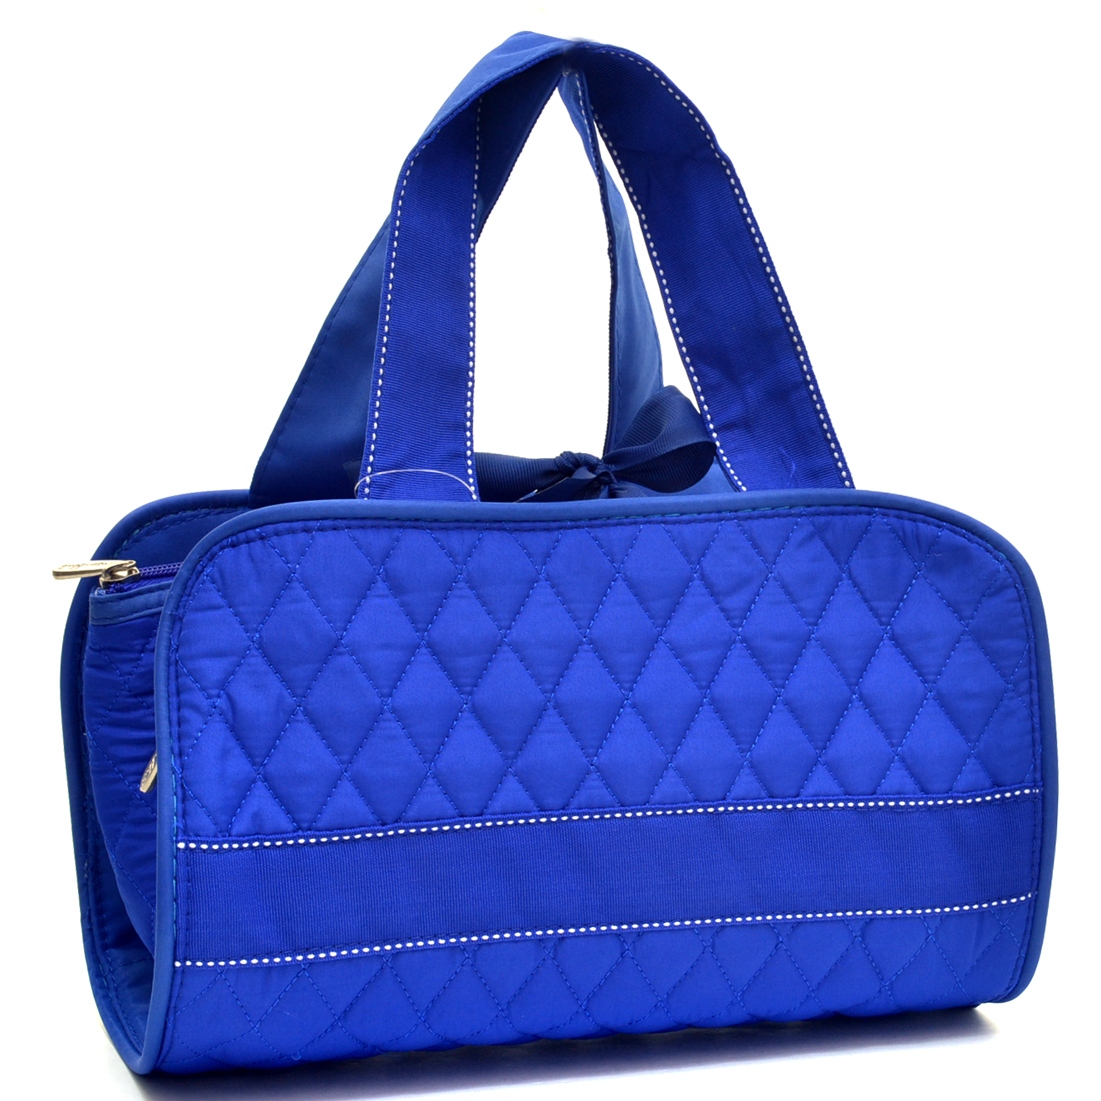 Rosen Blue™ Quilted Toiletry Travel Case with Removable Bags